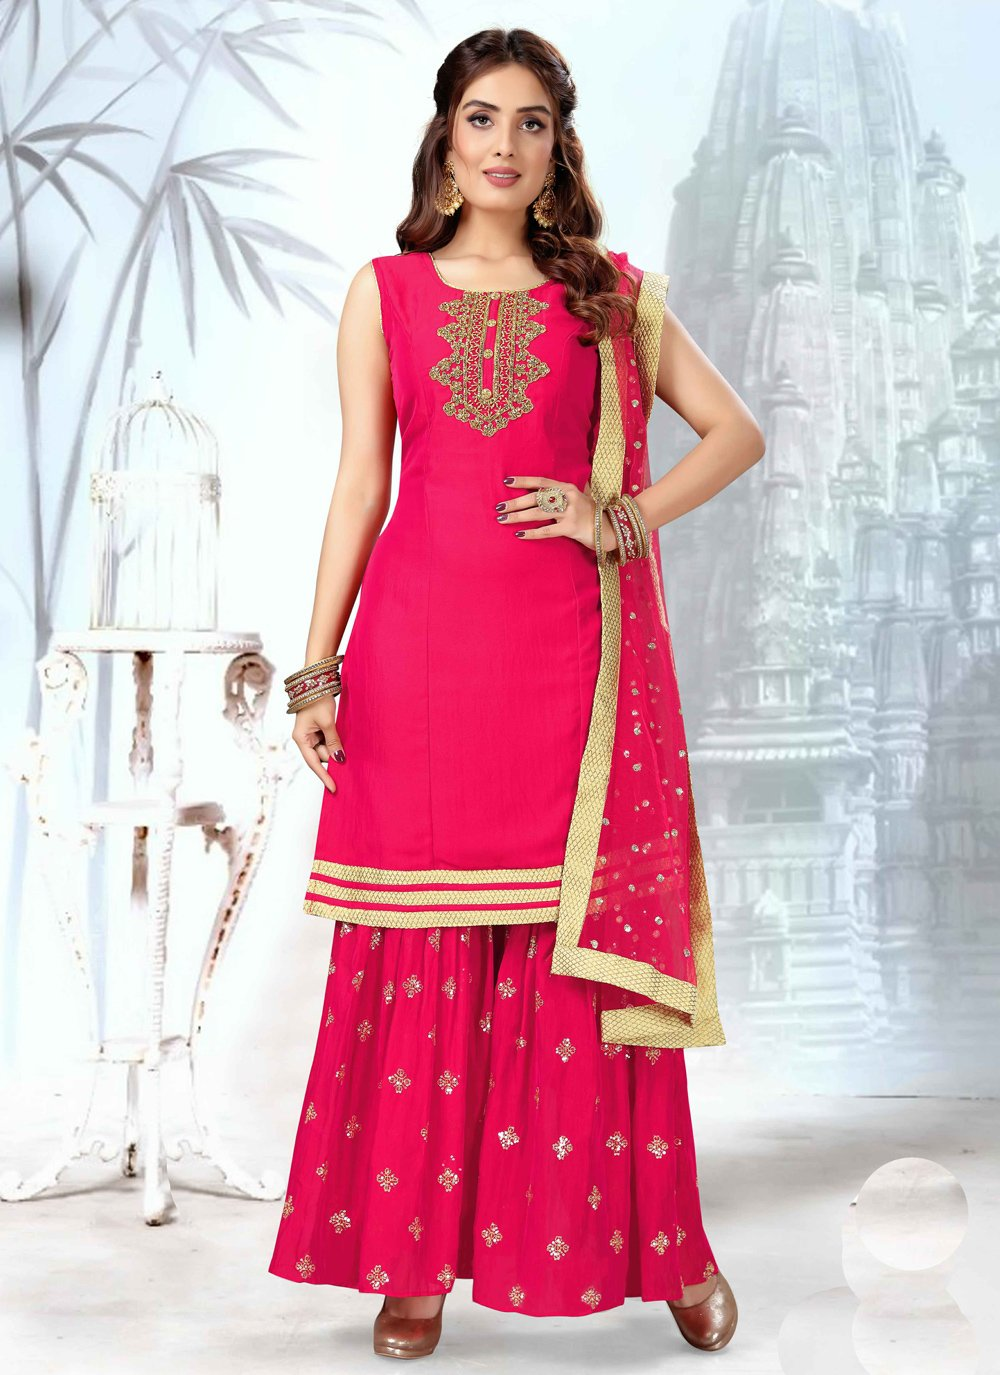 Art Silk Readymade Suit in Hot Pink